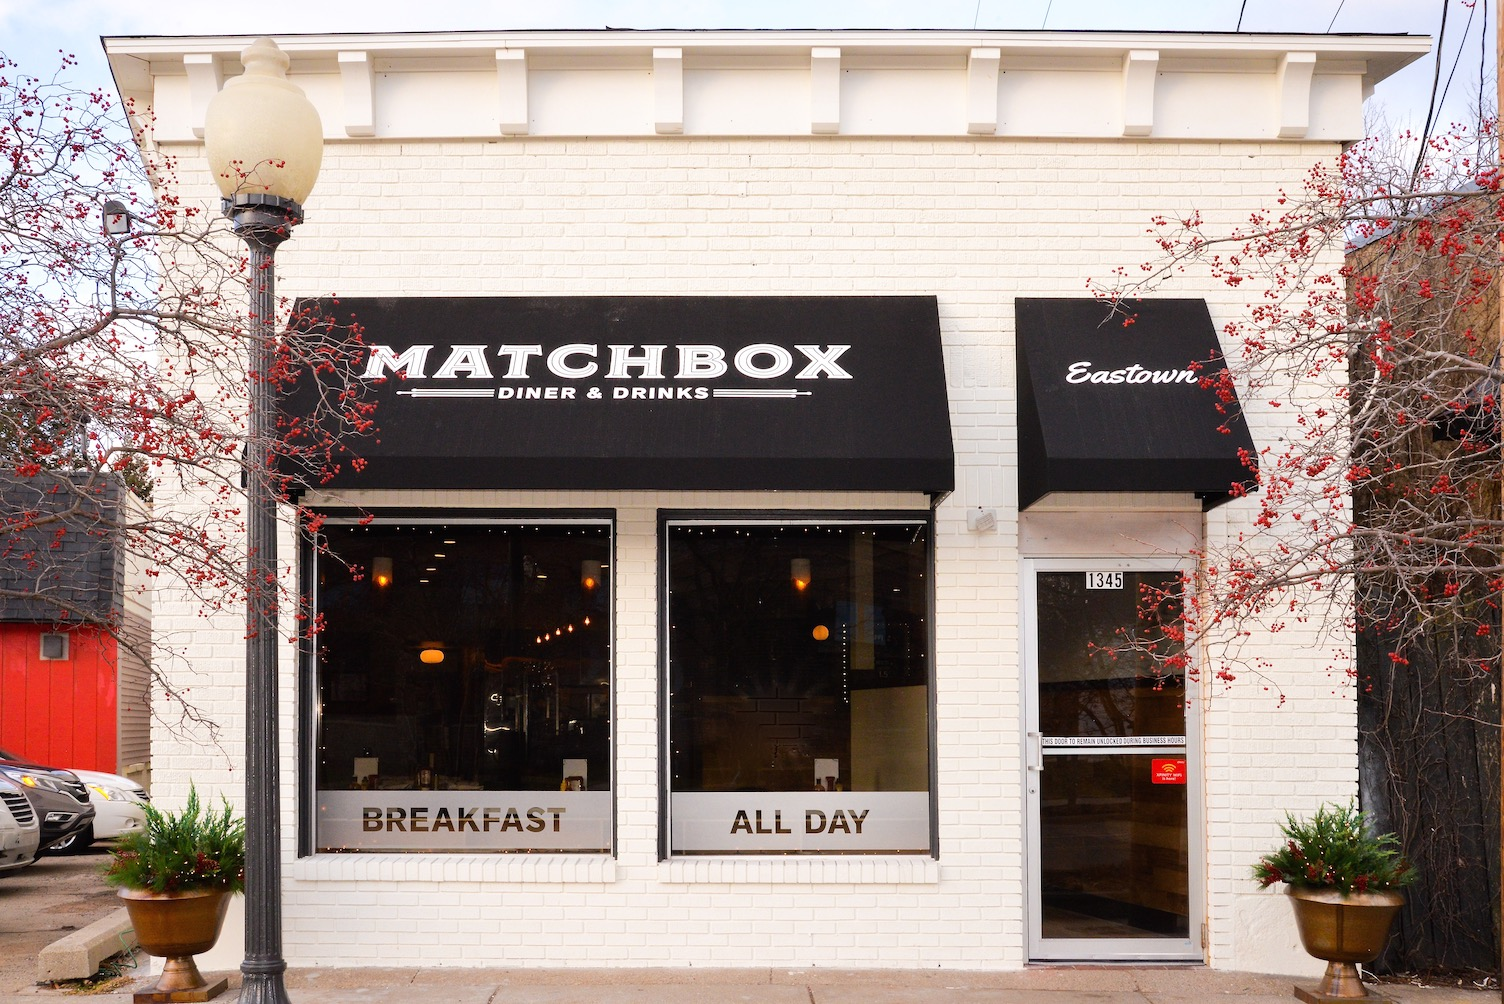 Matchbox Diner & Drinks - Grand Rapids' Diner and Delicatessen Restaurant